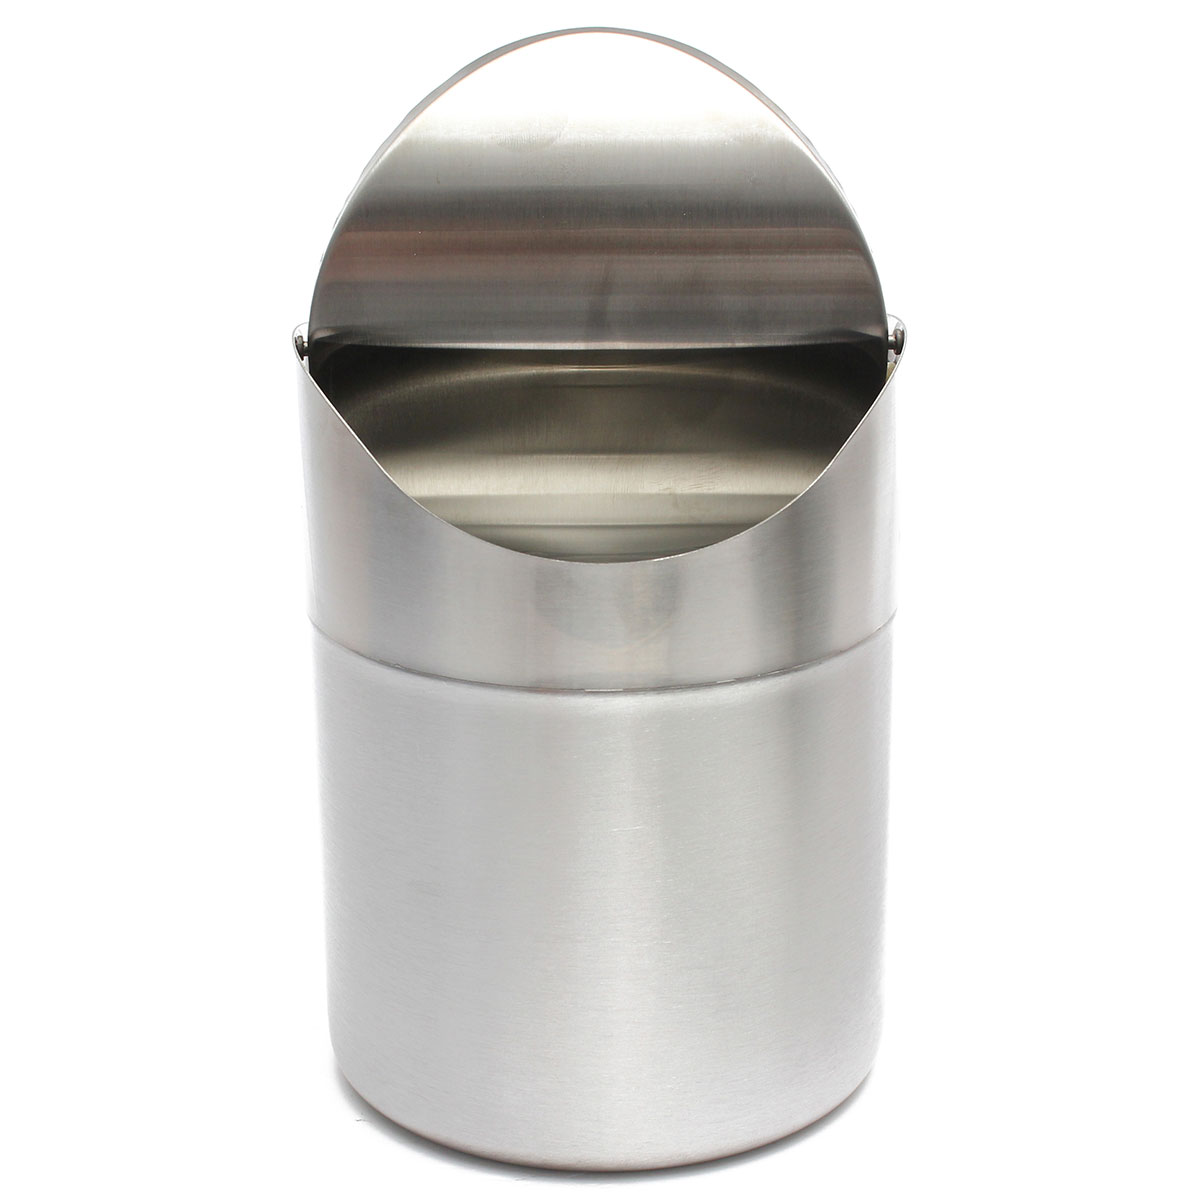 Aliexpress : Buy 15l Home Small Recycling Bin Swing Lid Kitchen Table  Tidy Stainless Steel Dustbin Trash Can Waste Rubbish From Reliable Steel  Camera